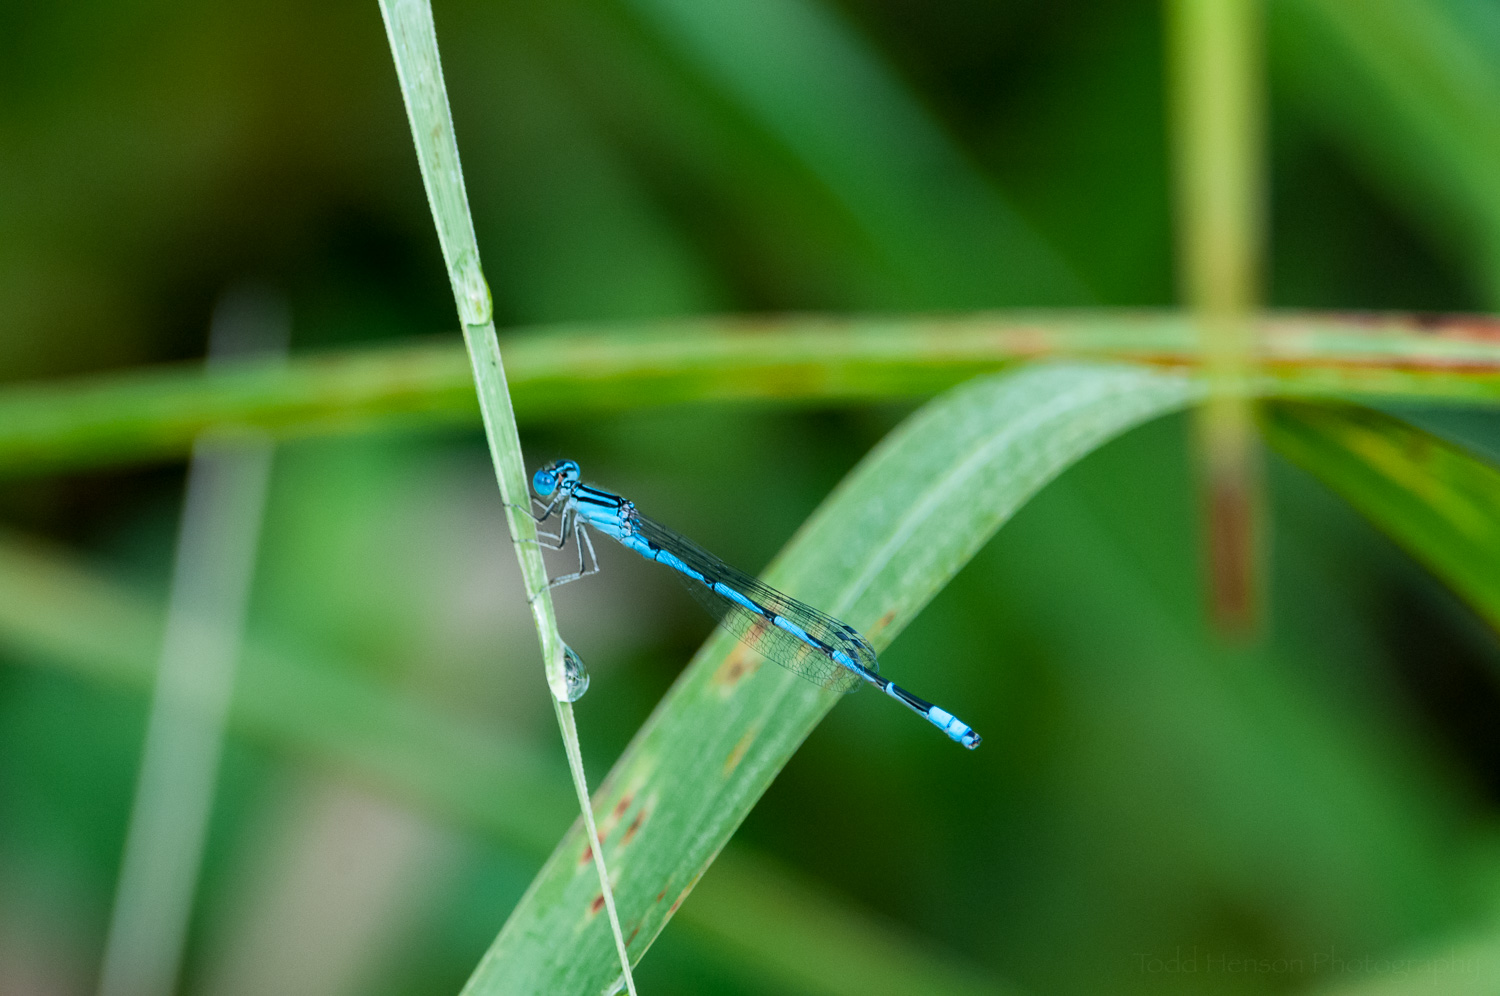 Familiar Bluet Damselfly against distracting background